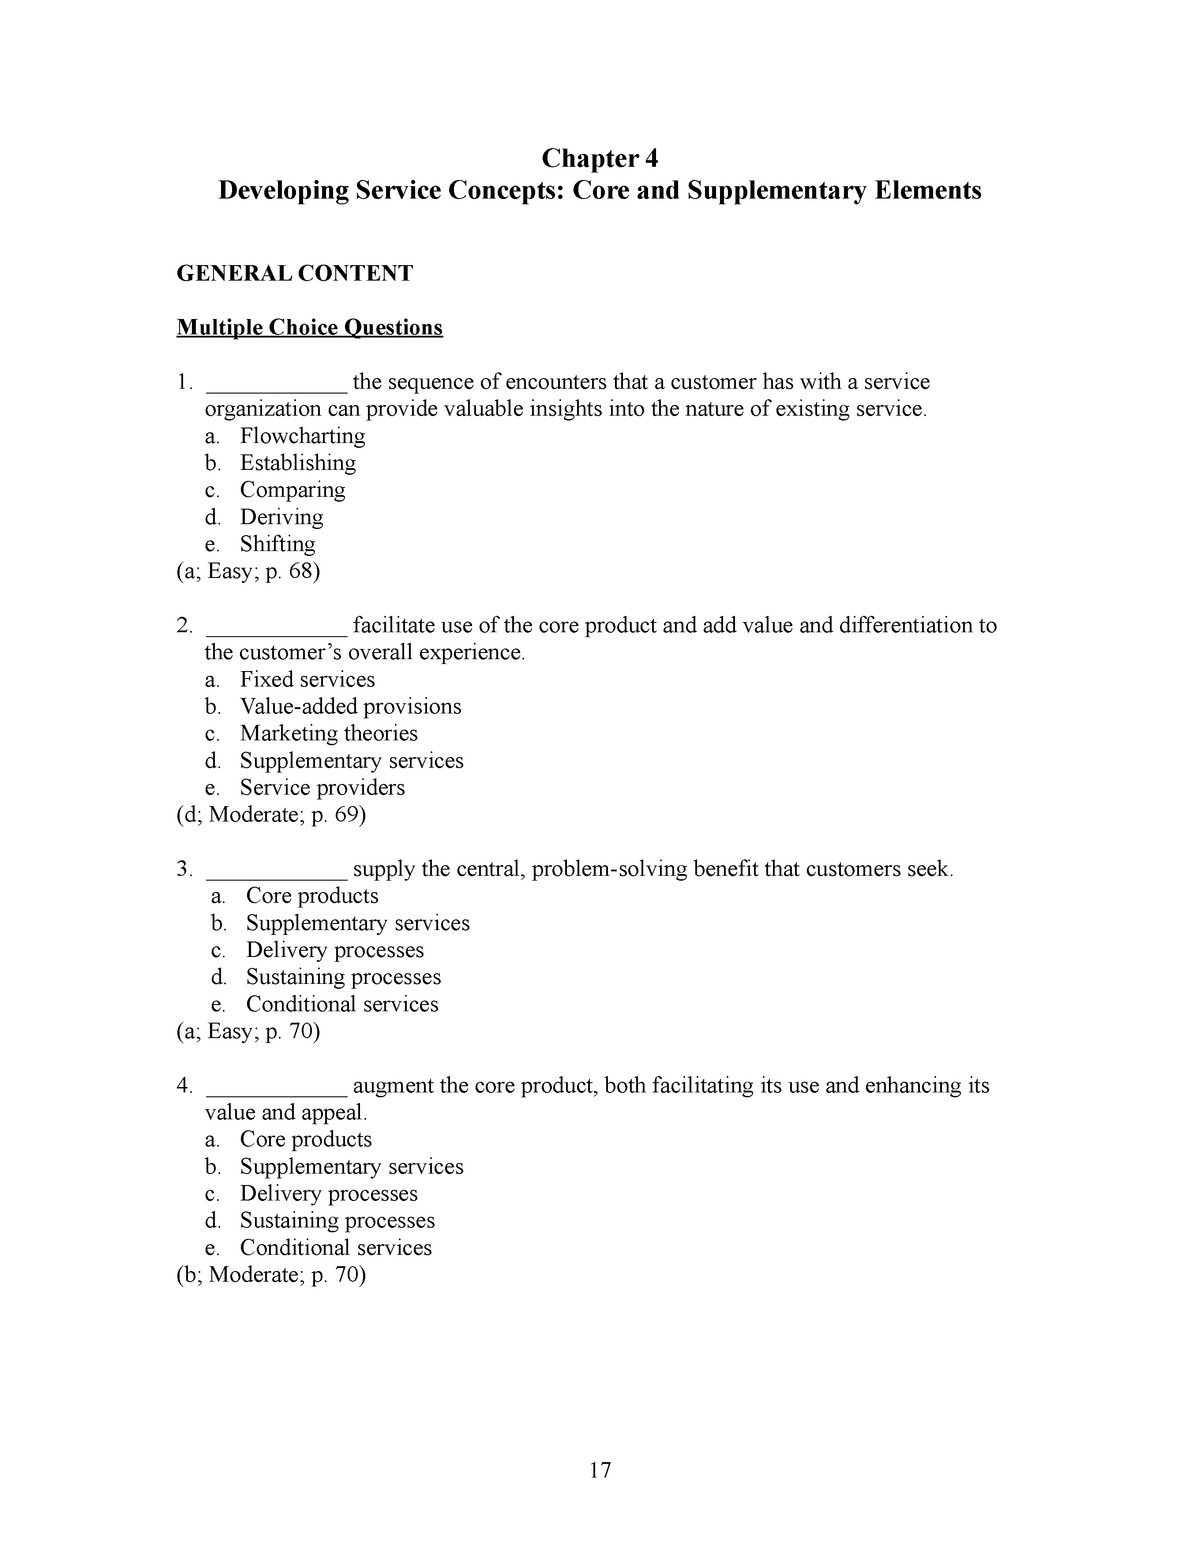 Chapter 4 MCQ Practice from Lovelock textbook - MKTG1053: Service